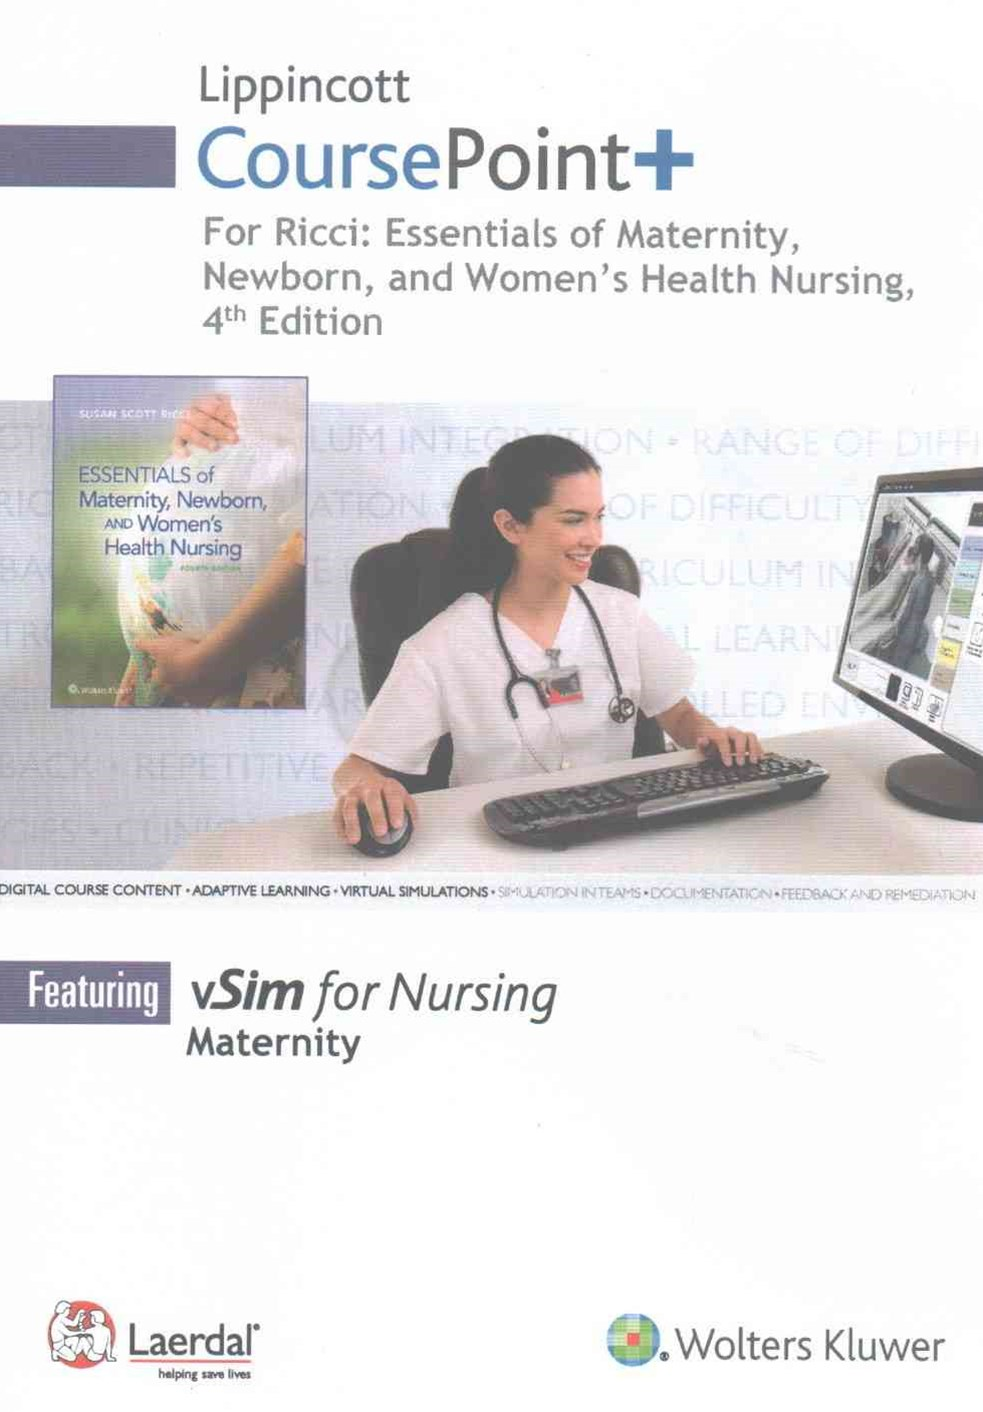 Lippincott CoursePoint+ for Ricci: Essentials of Maternity, Newborn, and Women's Health Nursing